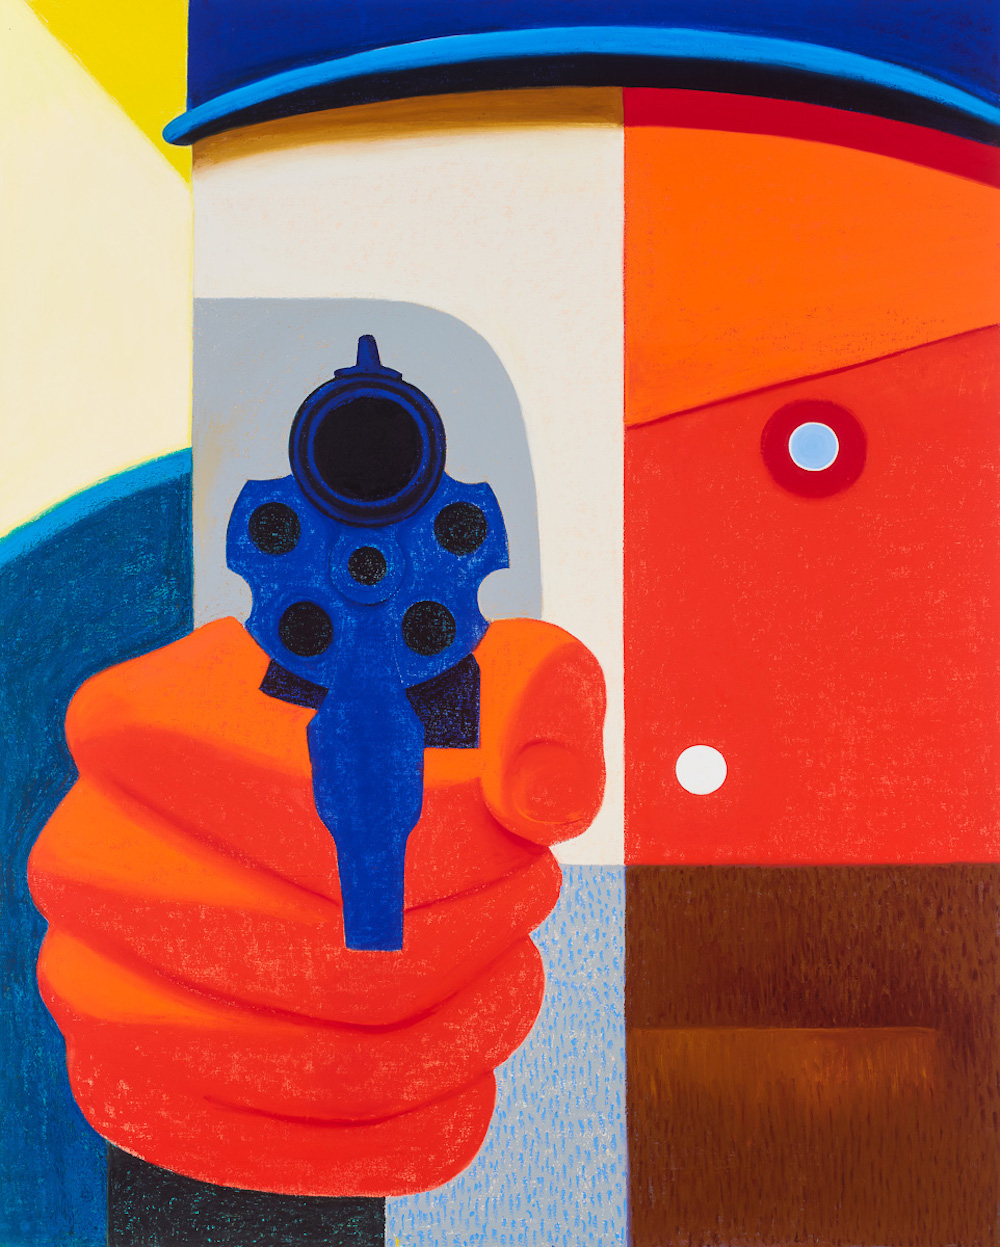 Nicole Eisenman, Shooter 2, 2016, oil on canvas, 82 x 65 inches (courtesy of the